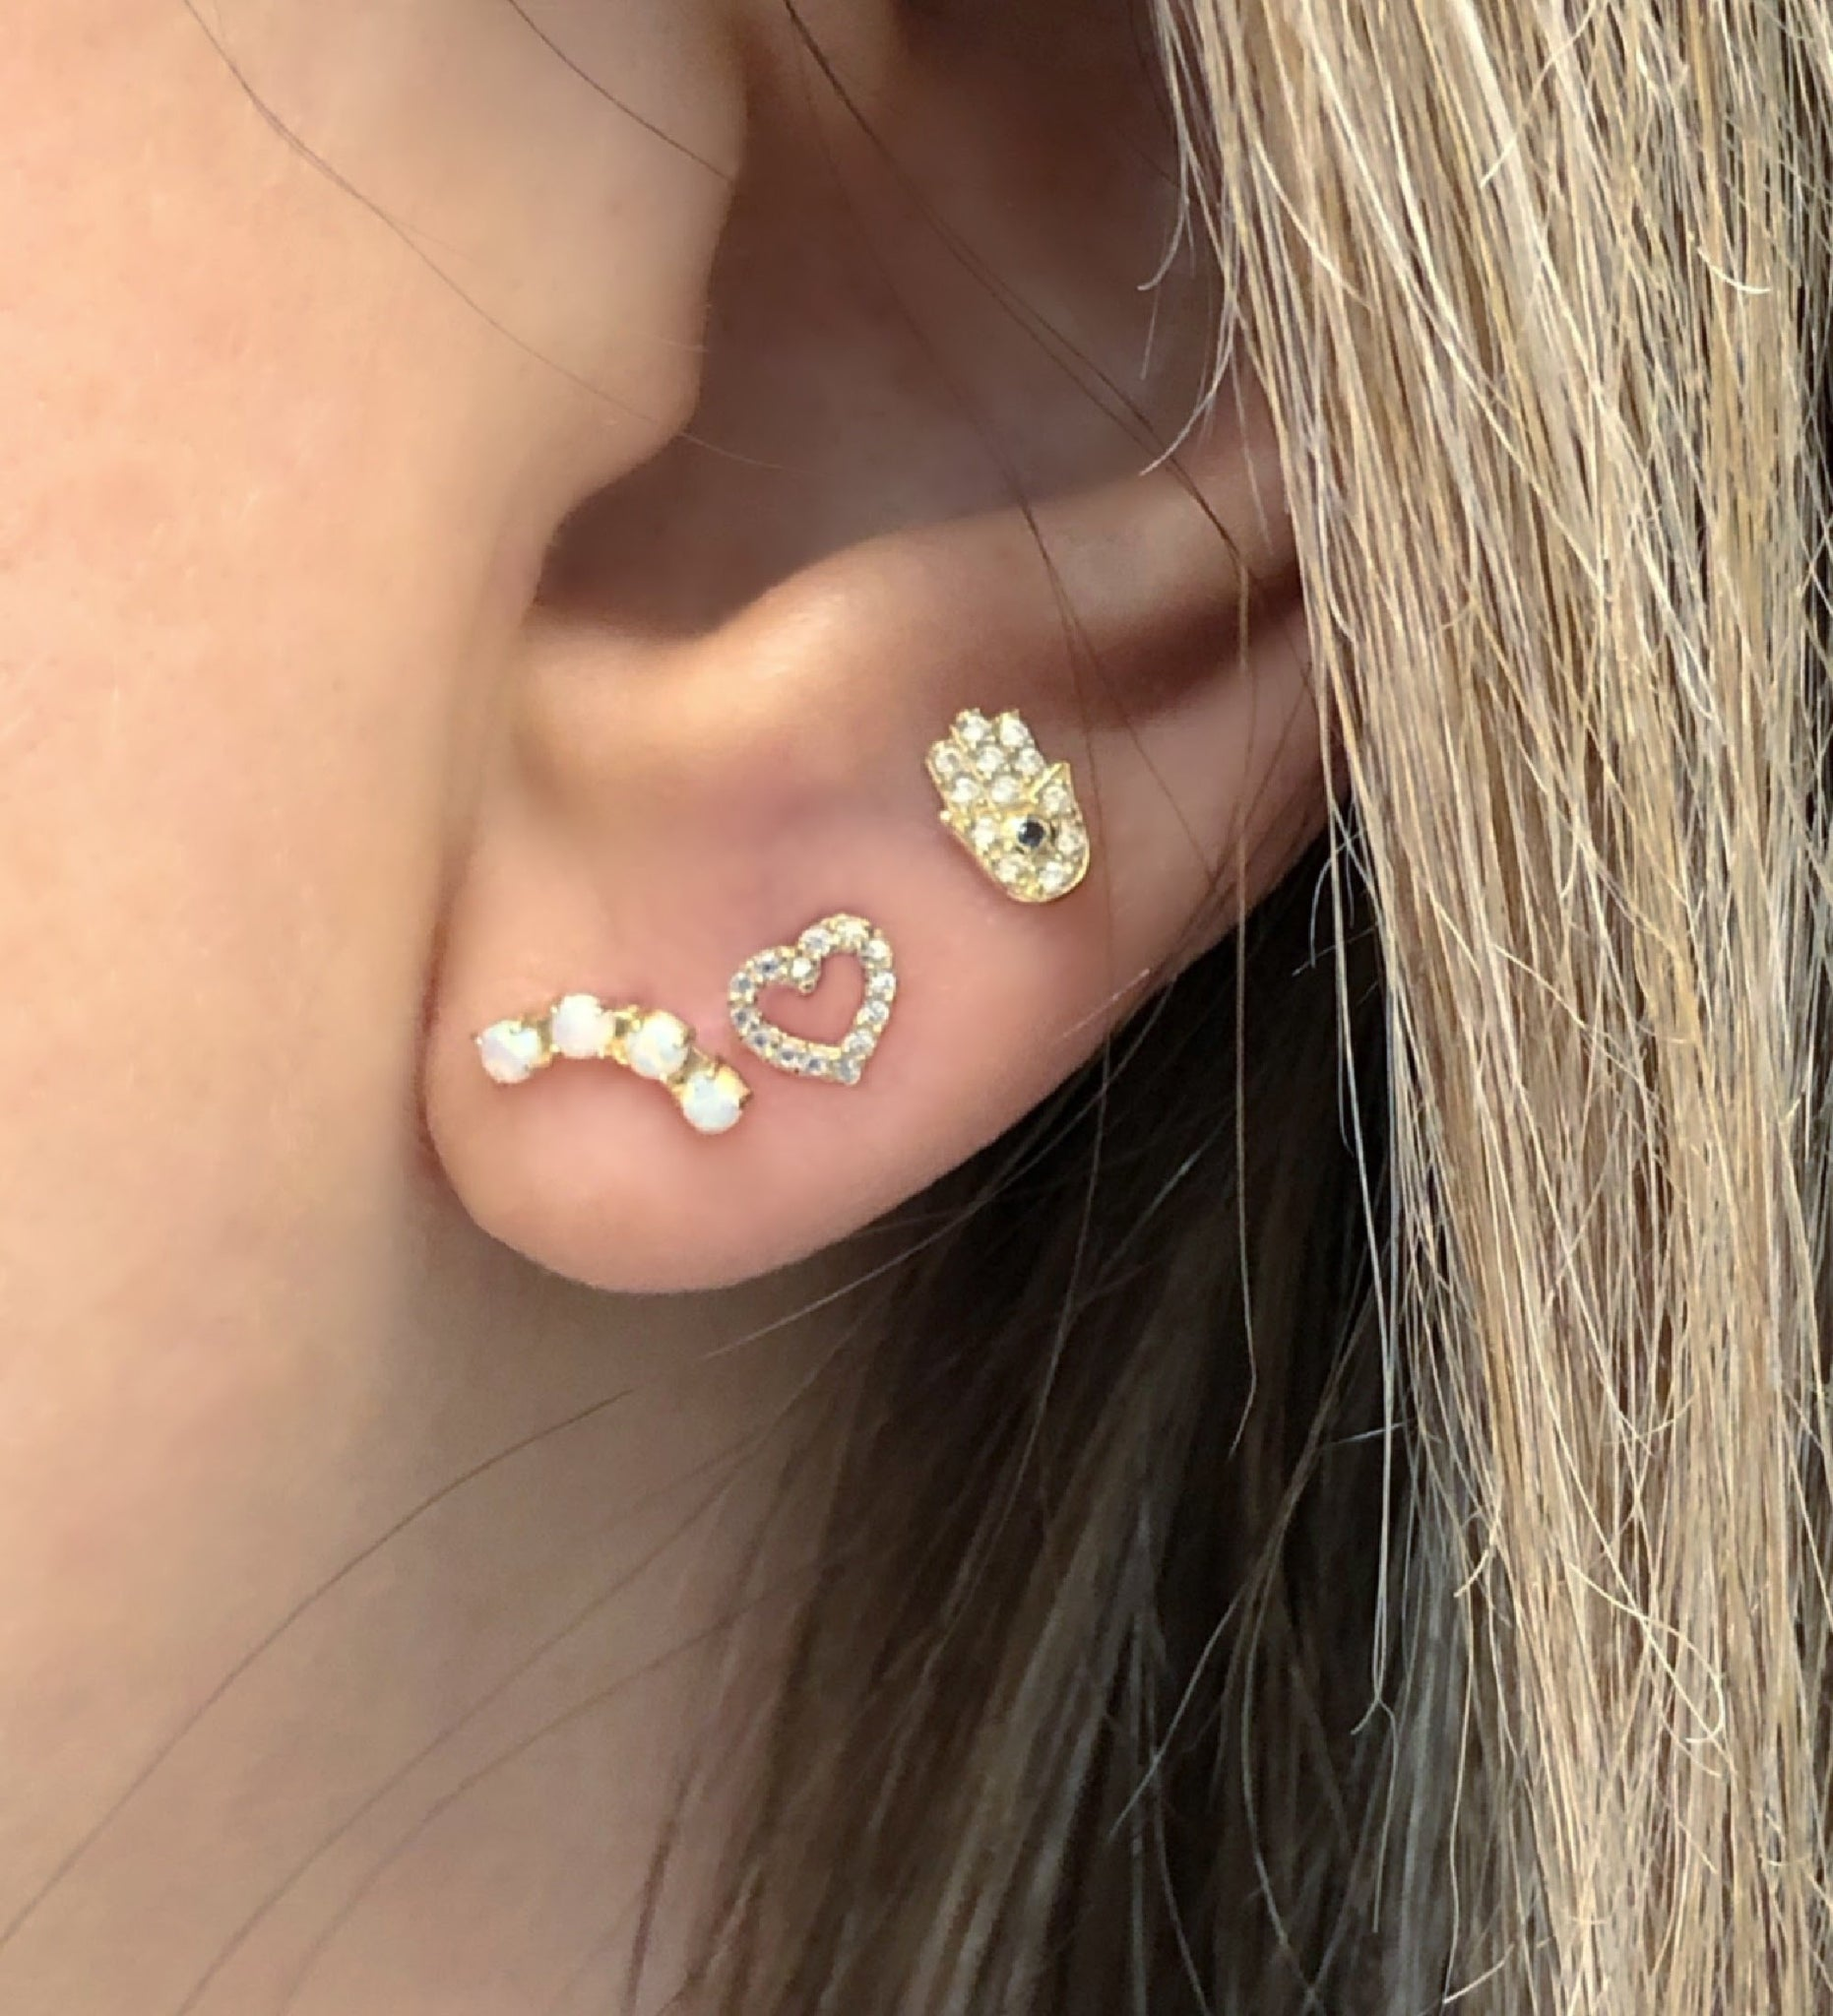 Hamsa Earring on Ear | Piercing Earrings | Solid Gold Hypoallergenic Jewelry | Helix, Tragus, Cartilage | Two of Most Fine Jewelry